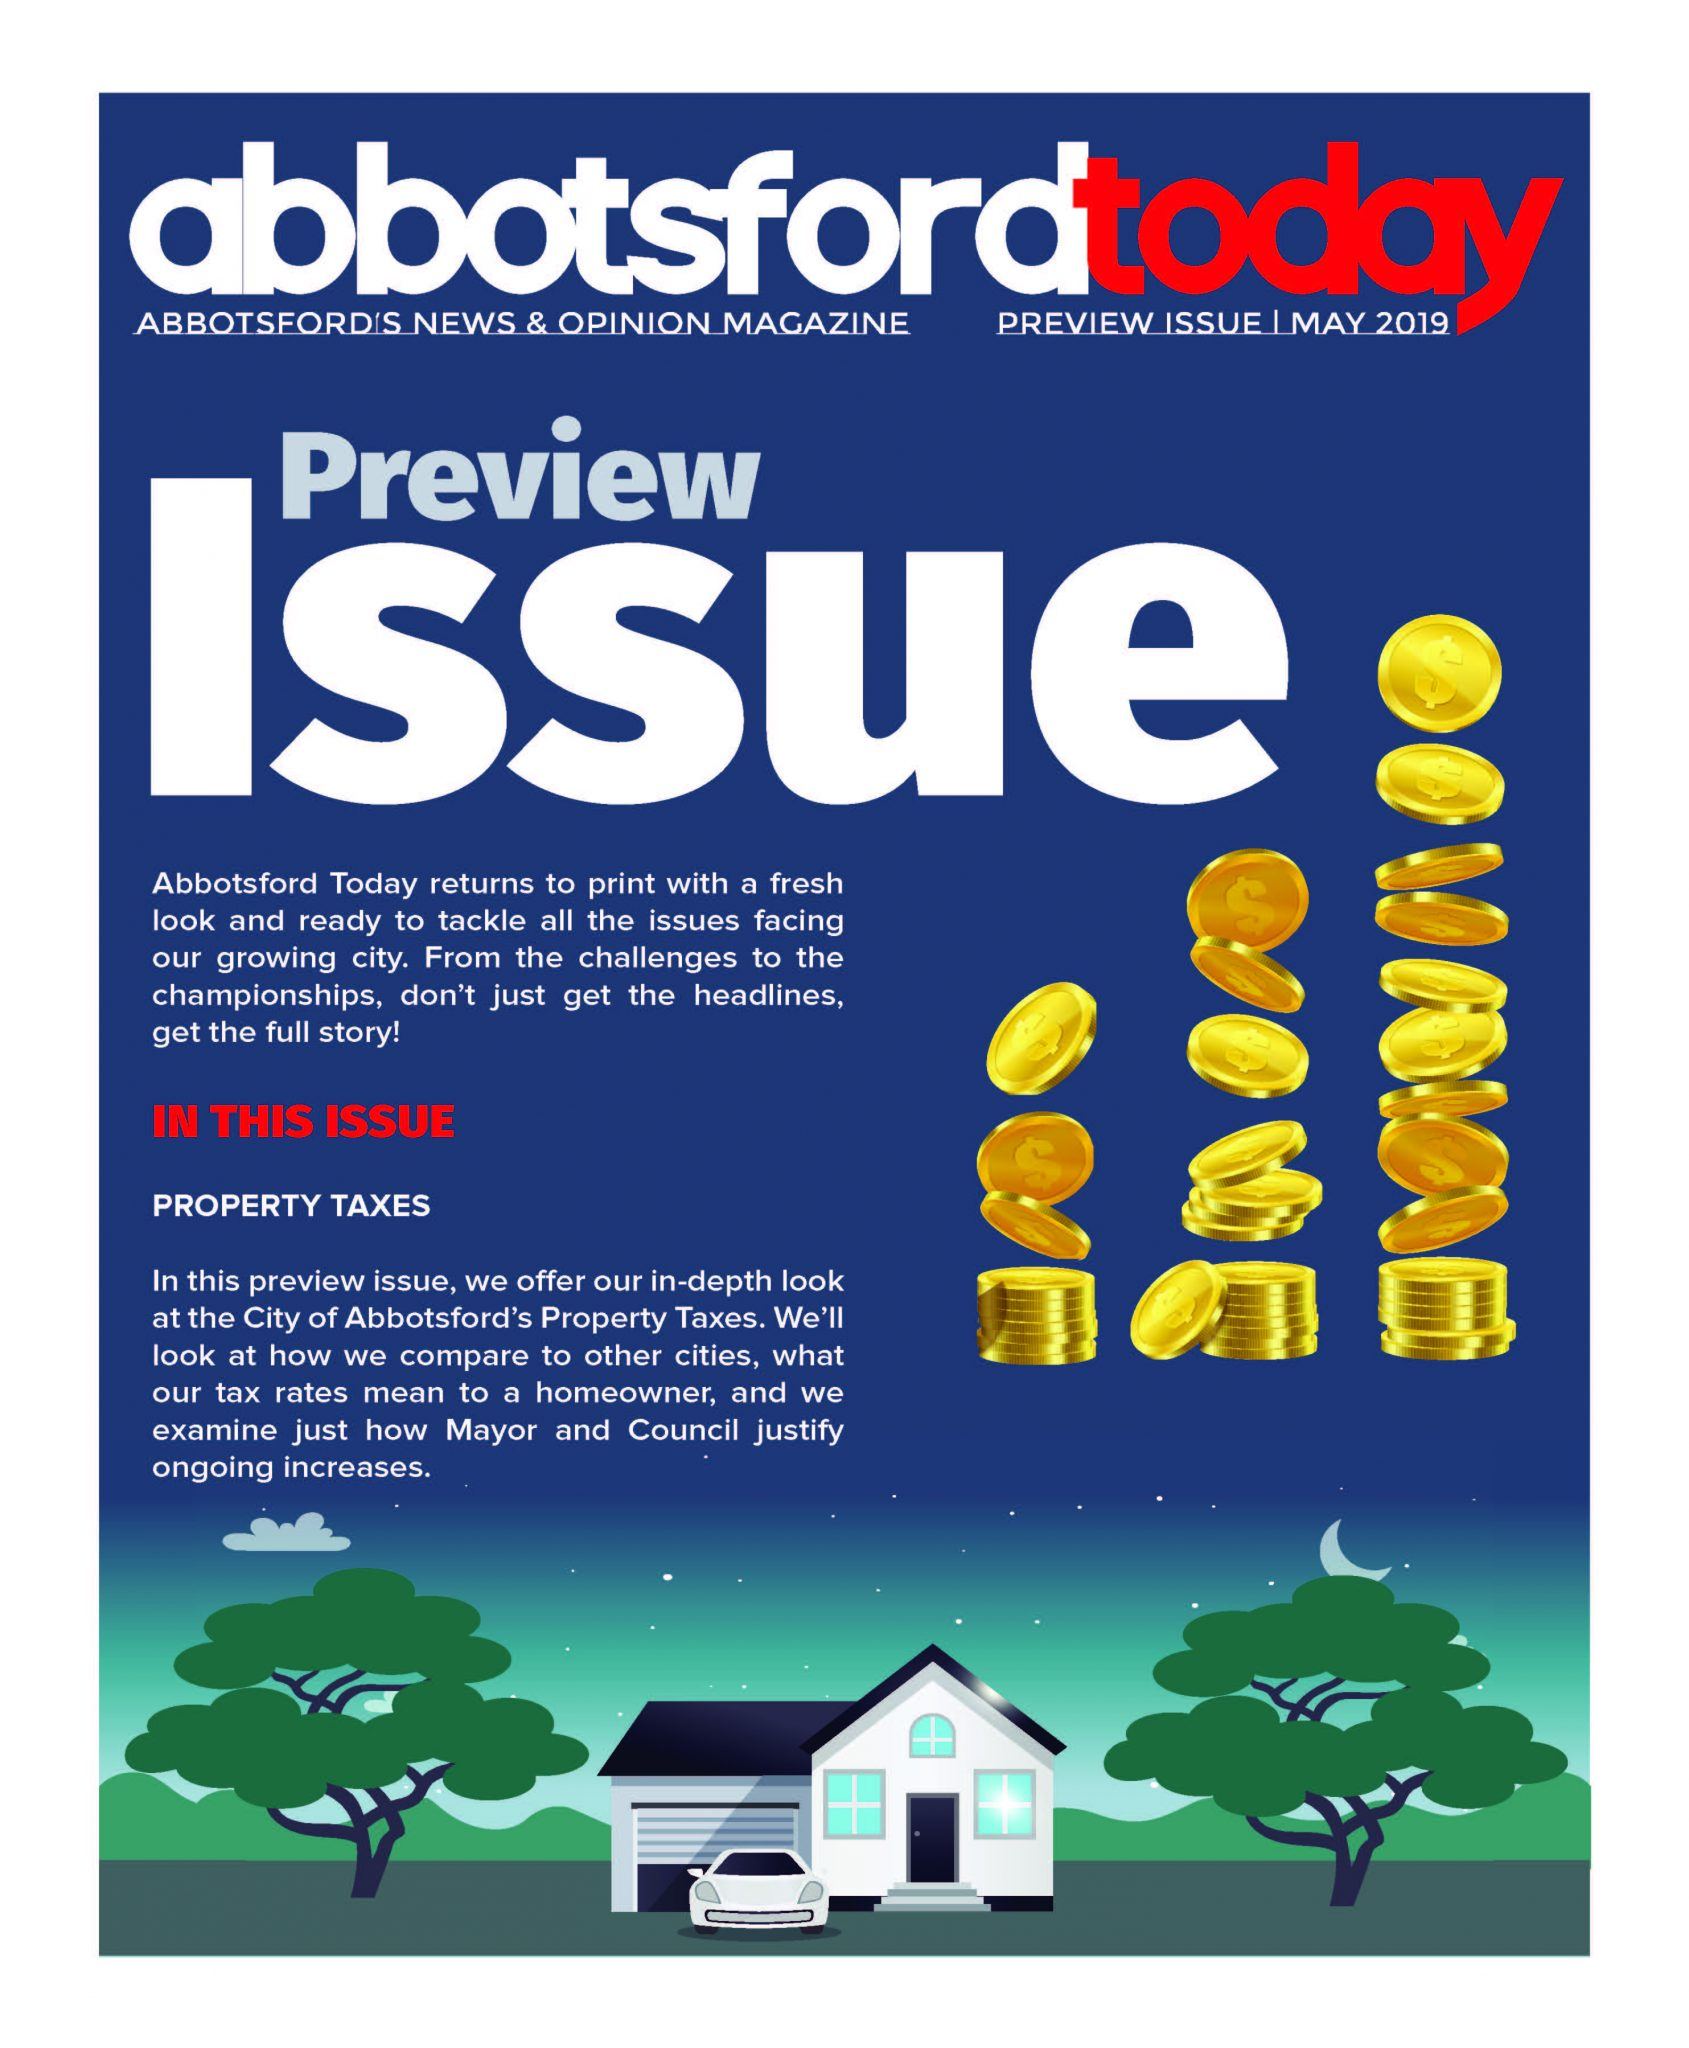 Preview Issue Now Available!